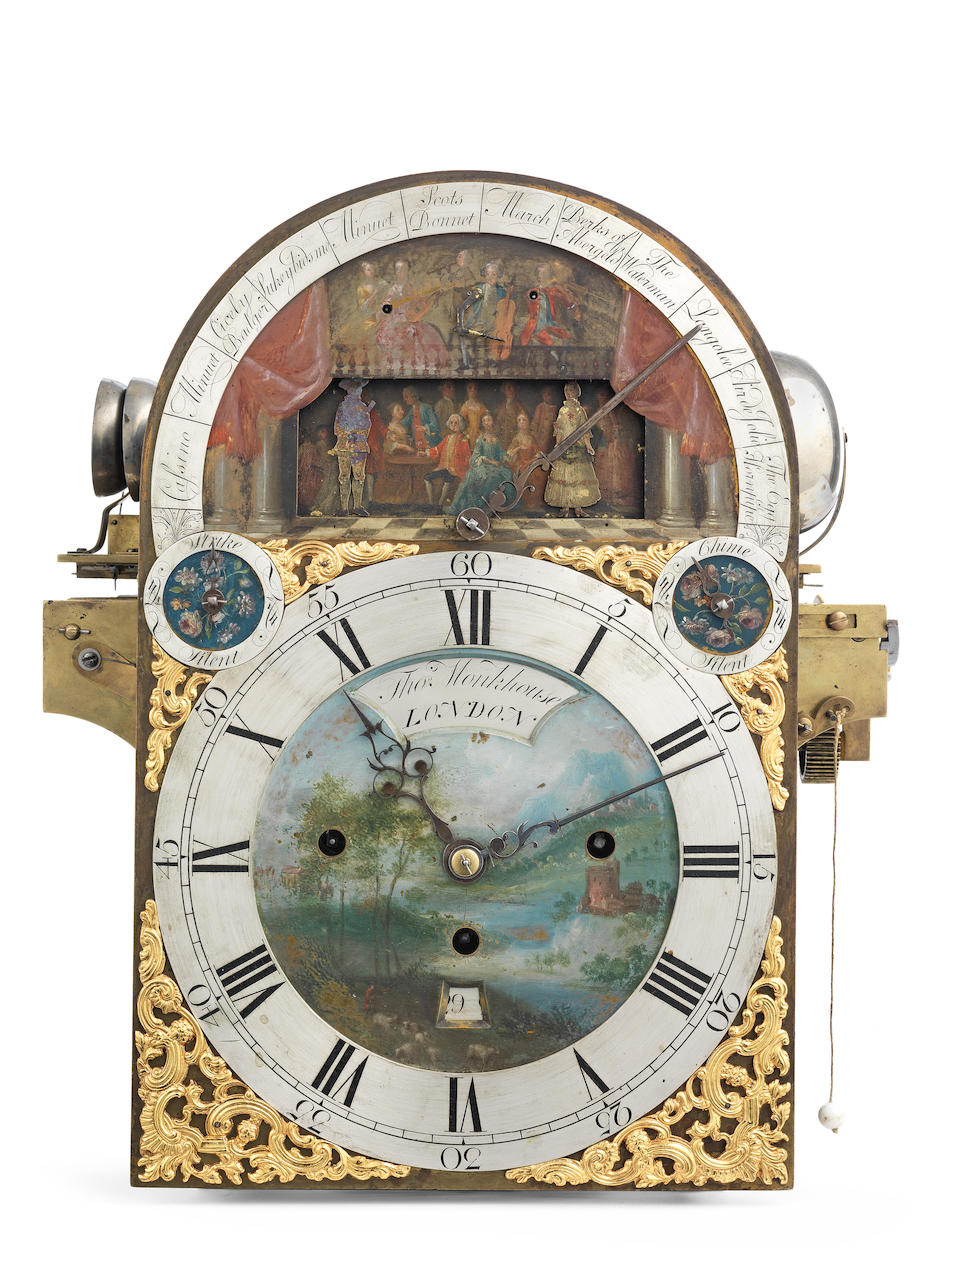 A rare mid 18th century double automata twelve-tune musical table clock on 24 hammers and 12 bells Thomas Monkhouse, London